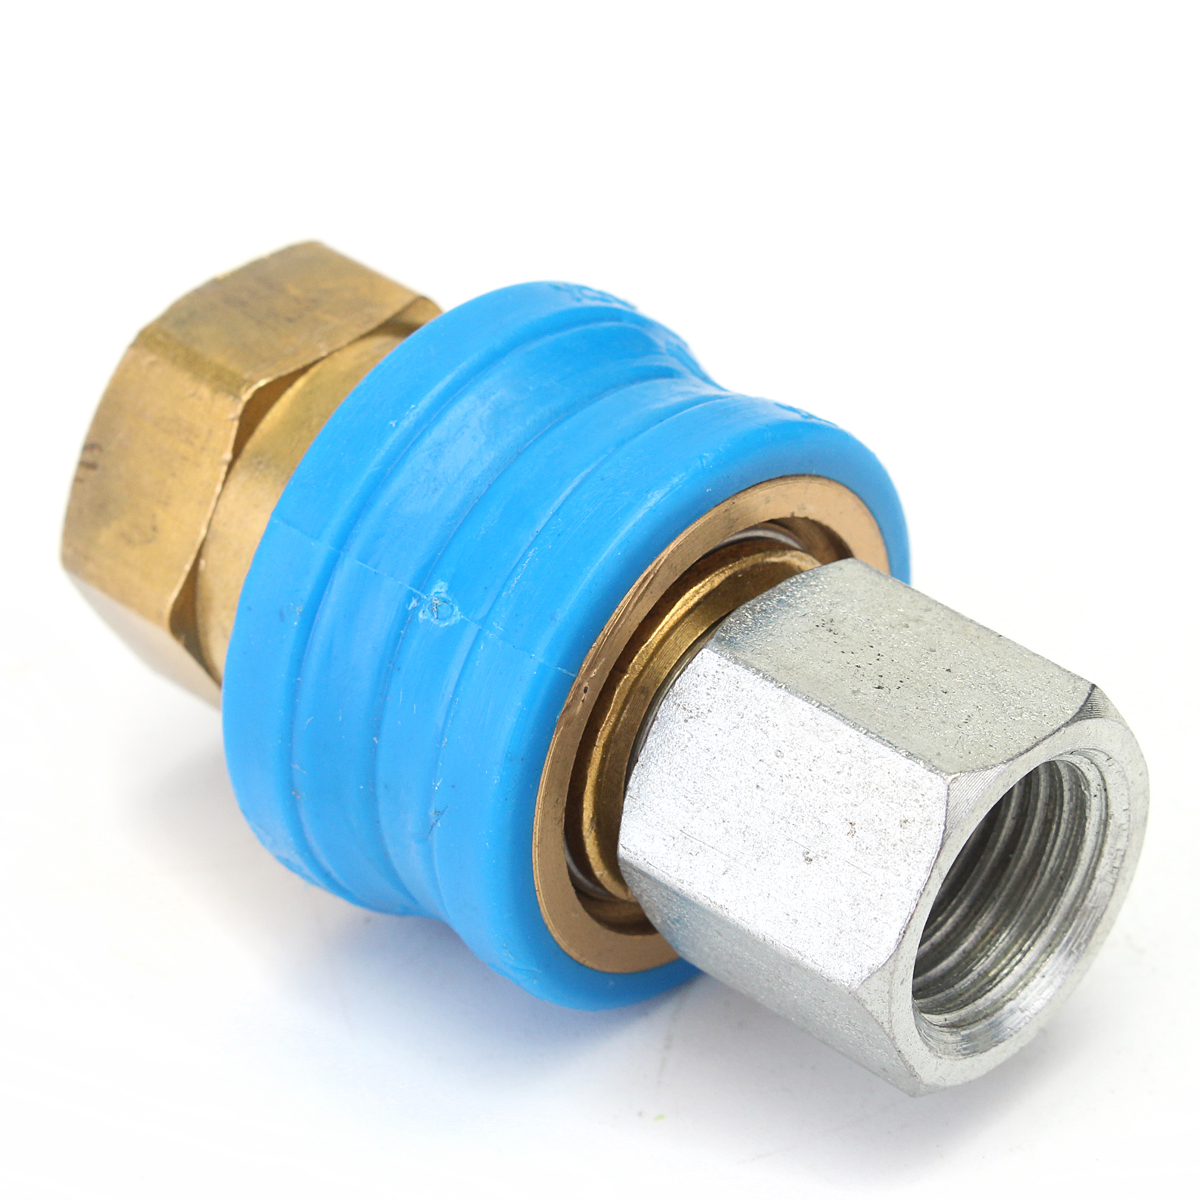 Pressure Washer pressurewashersteam Steam Cleaner Quick Release Compact 1/4F Coupling